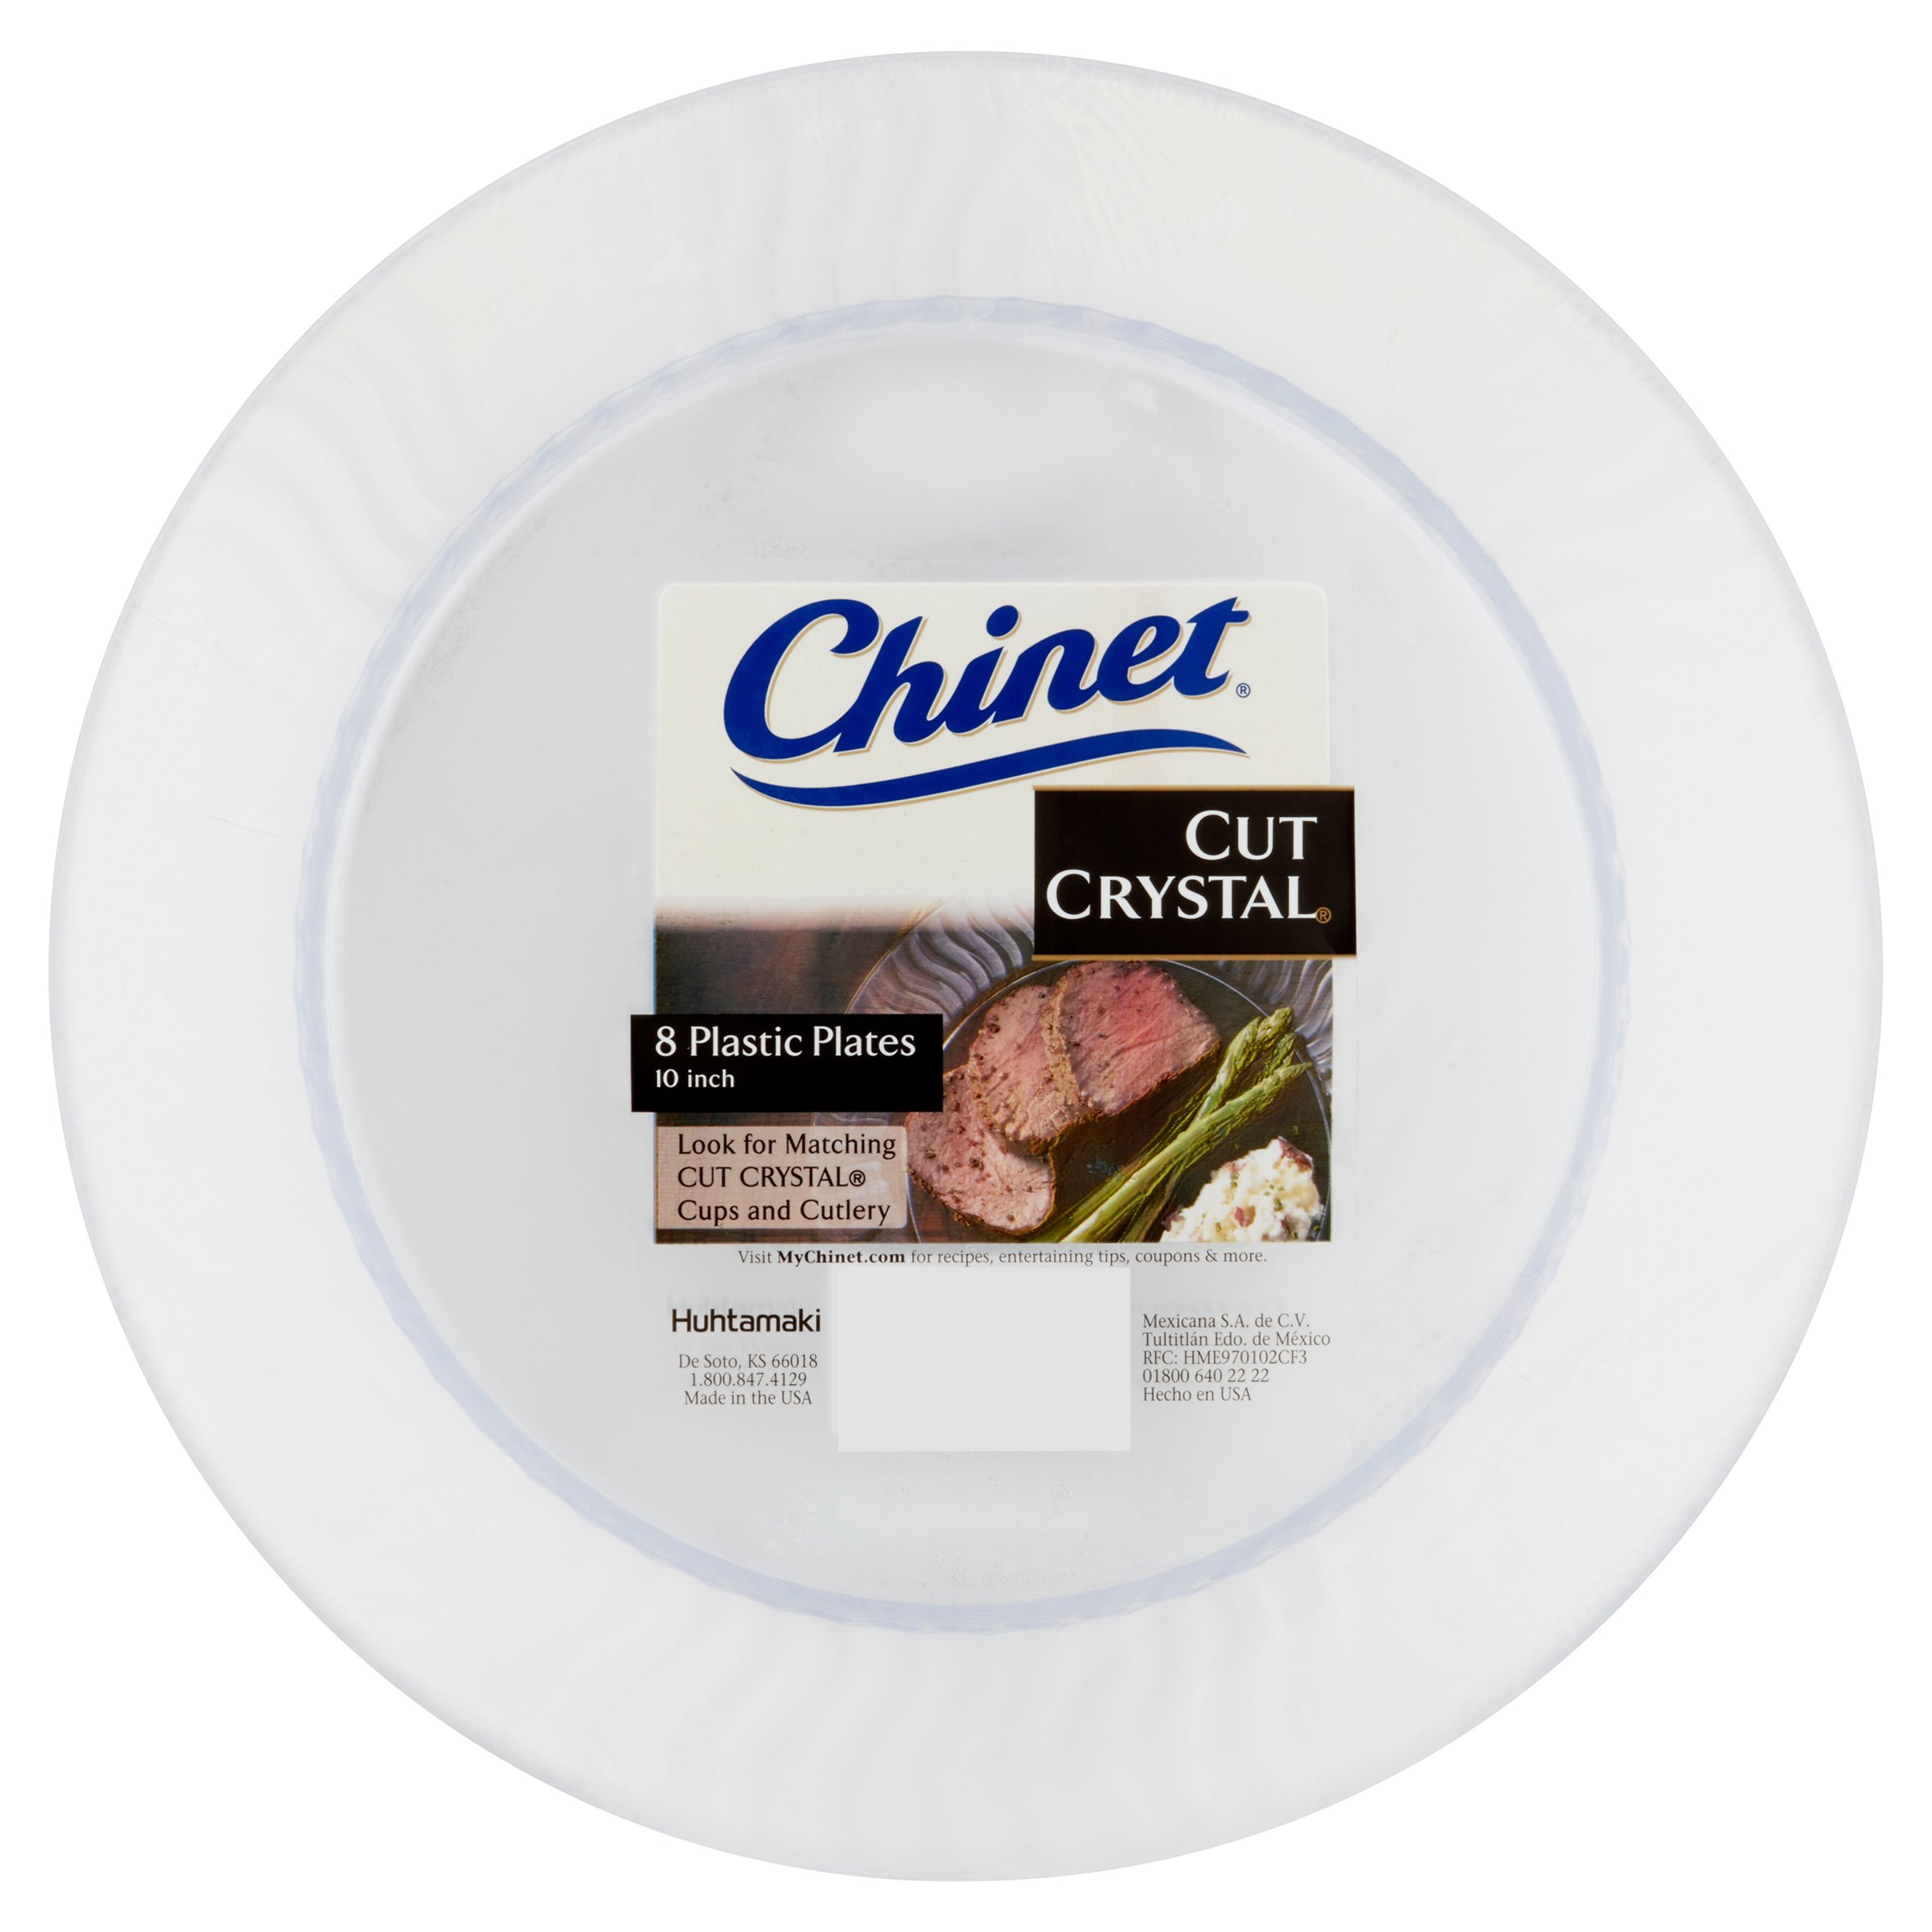 "Chinet Cut Crystal Plastic Plates, 10"", 8 count"